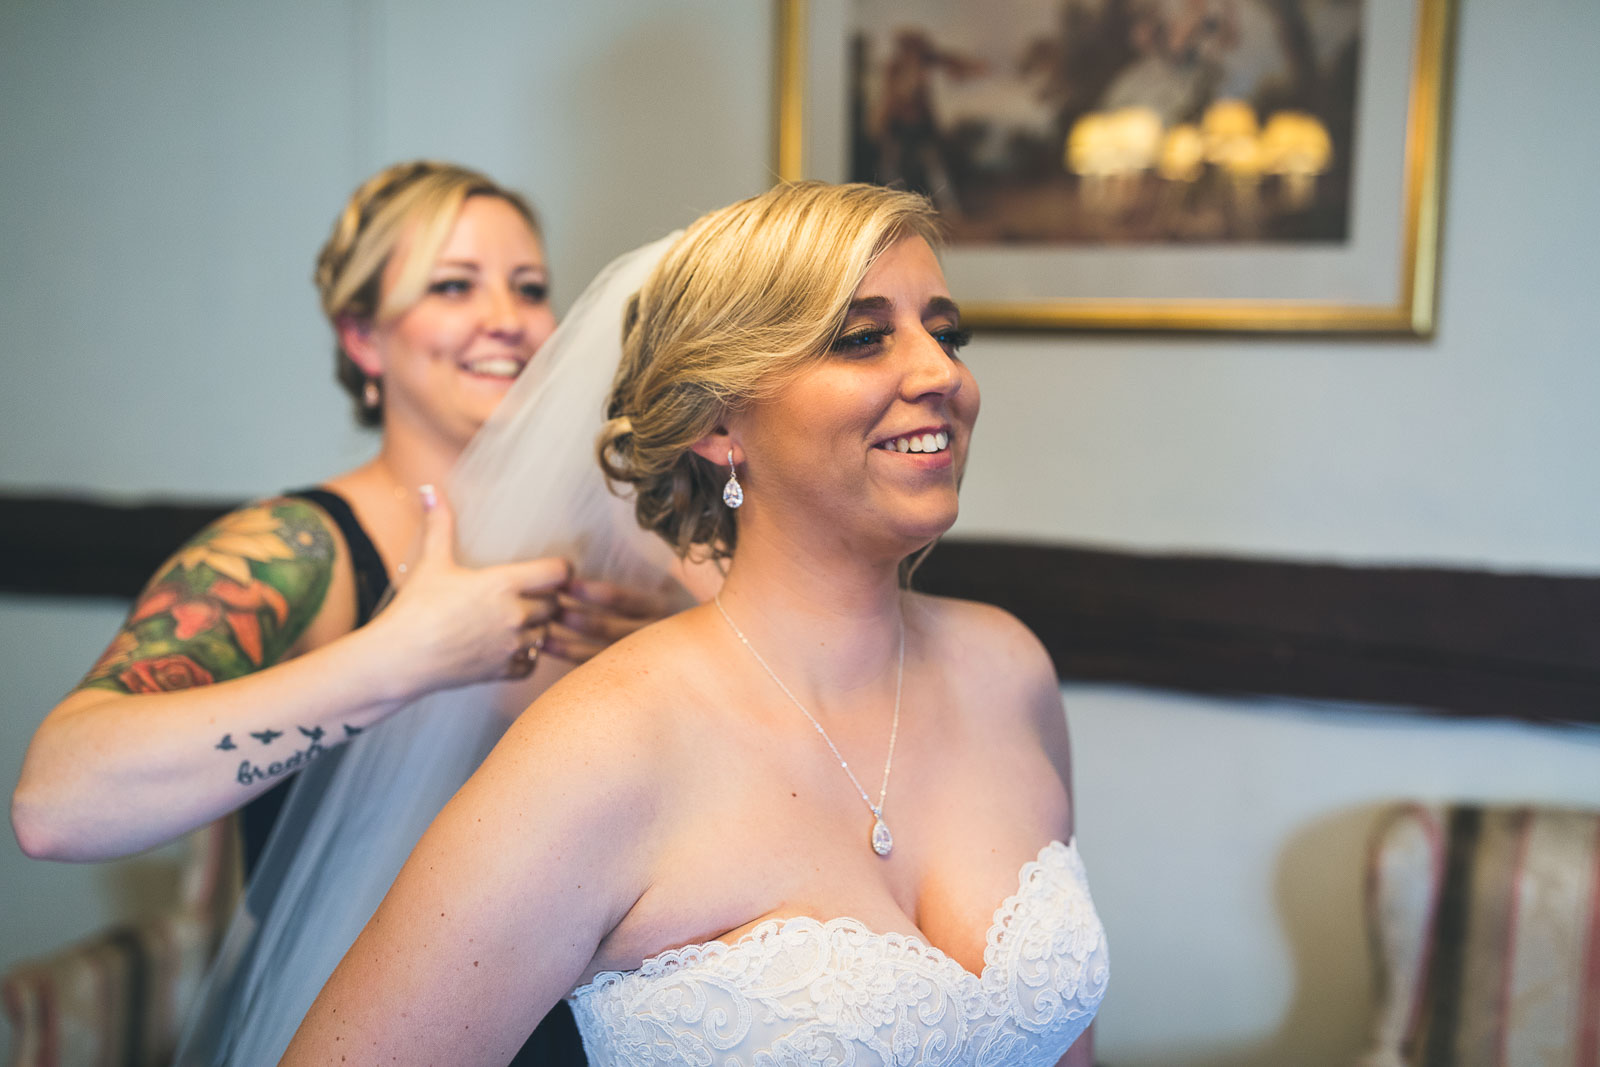 Bride Getting Vail On